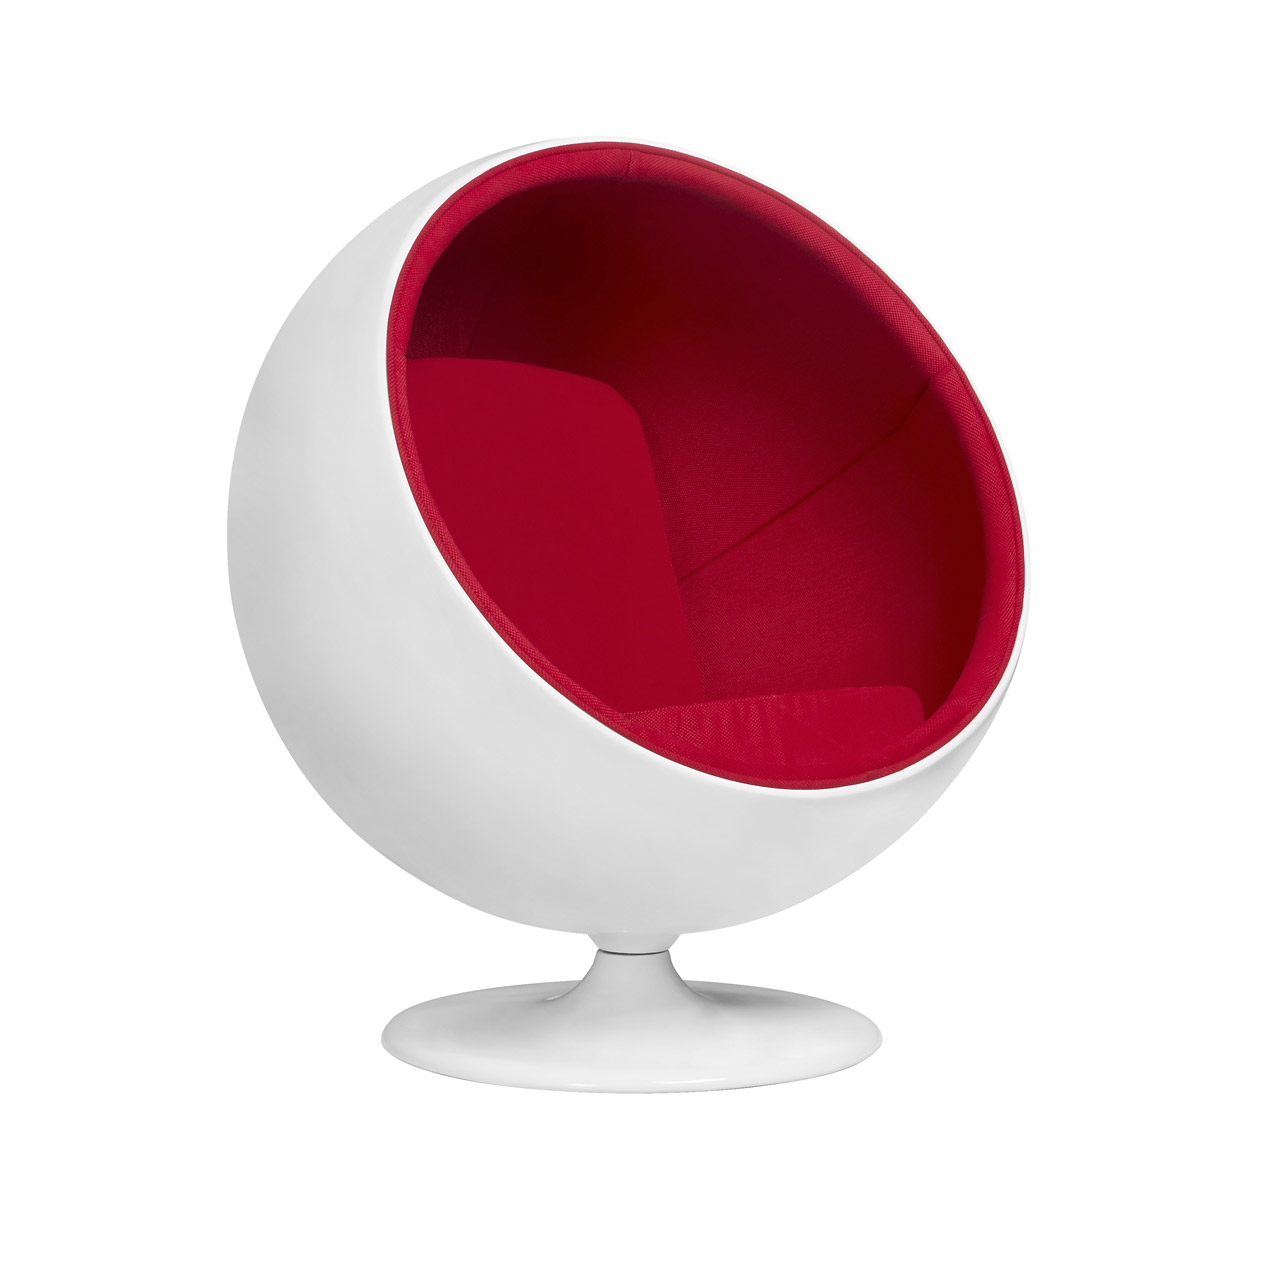 Ball Chair, Eero Aarnio, Adelta, 1966